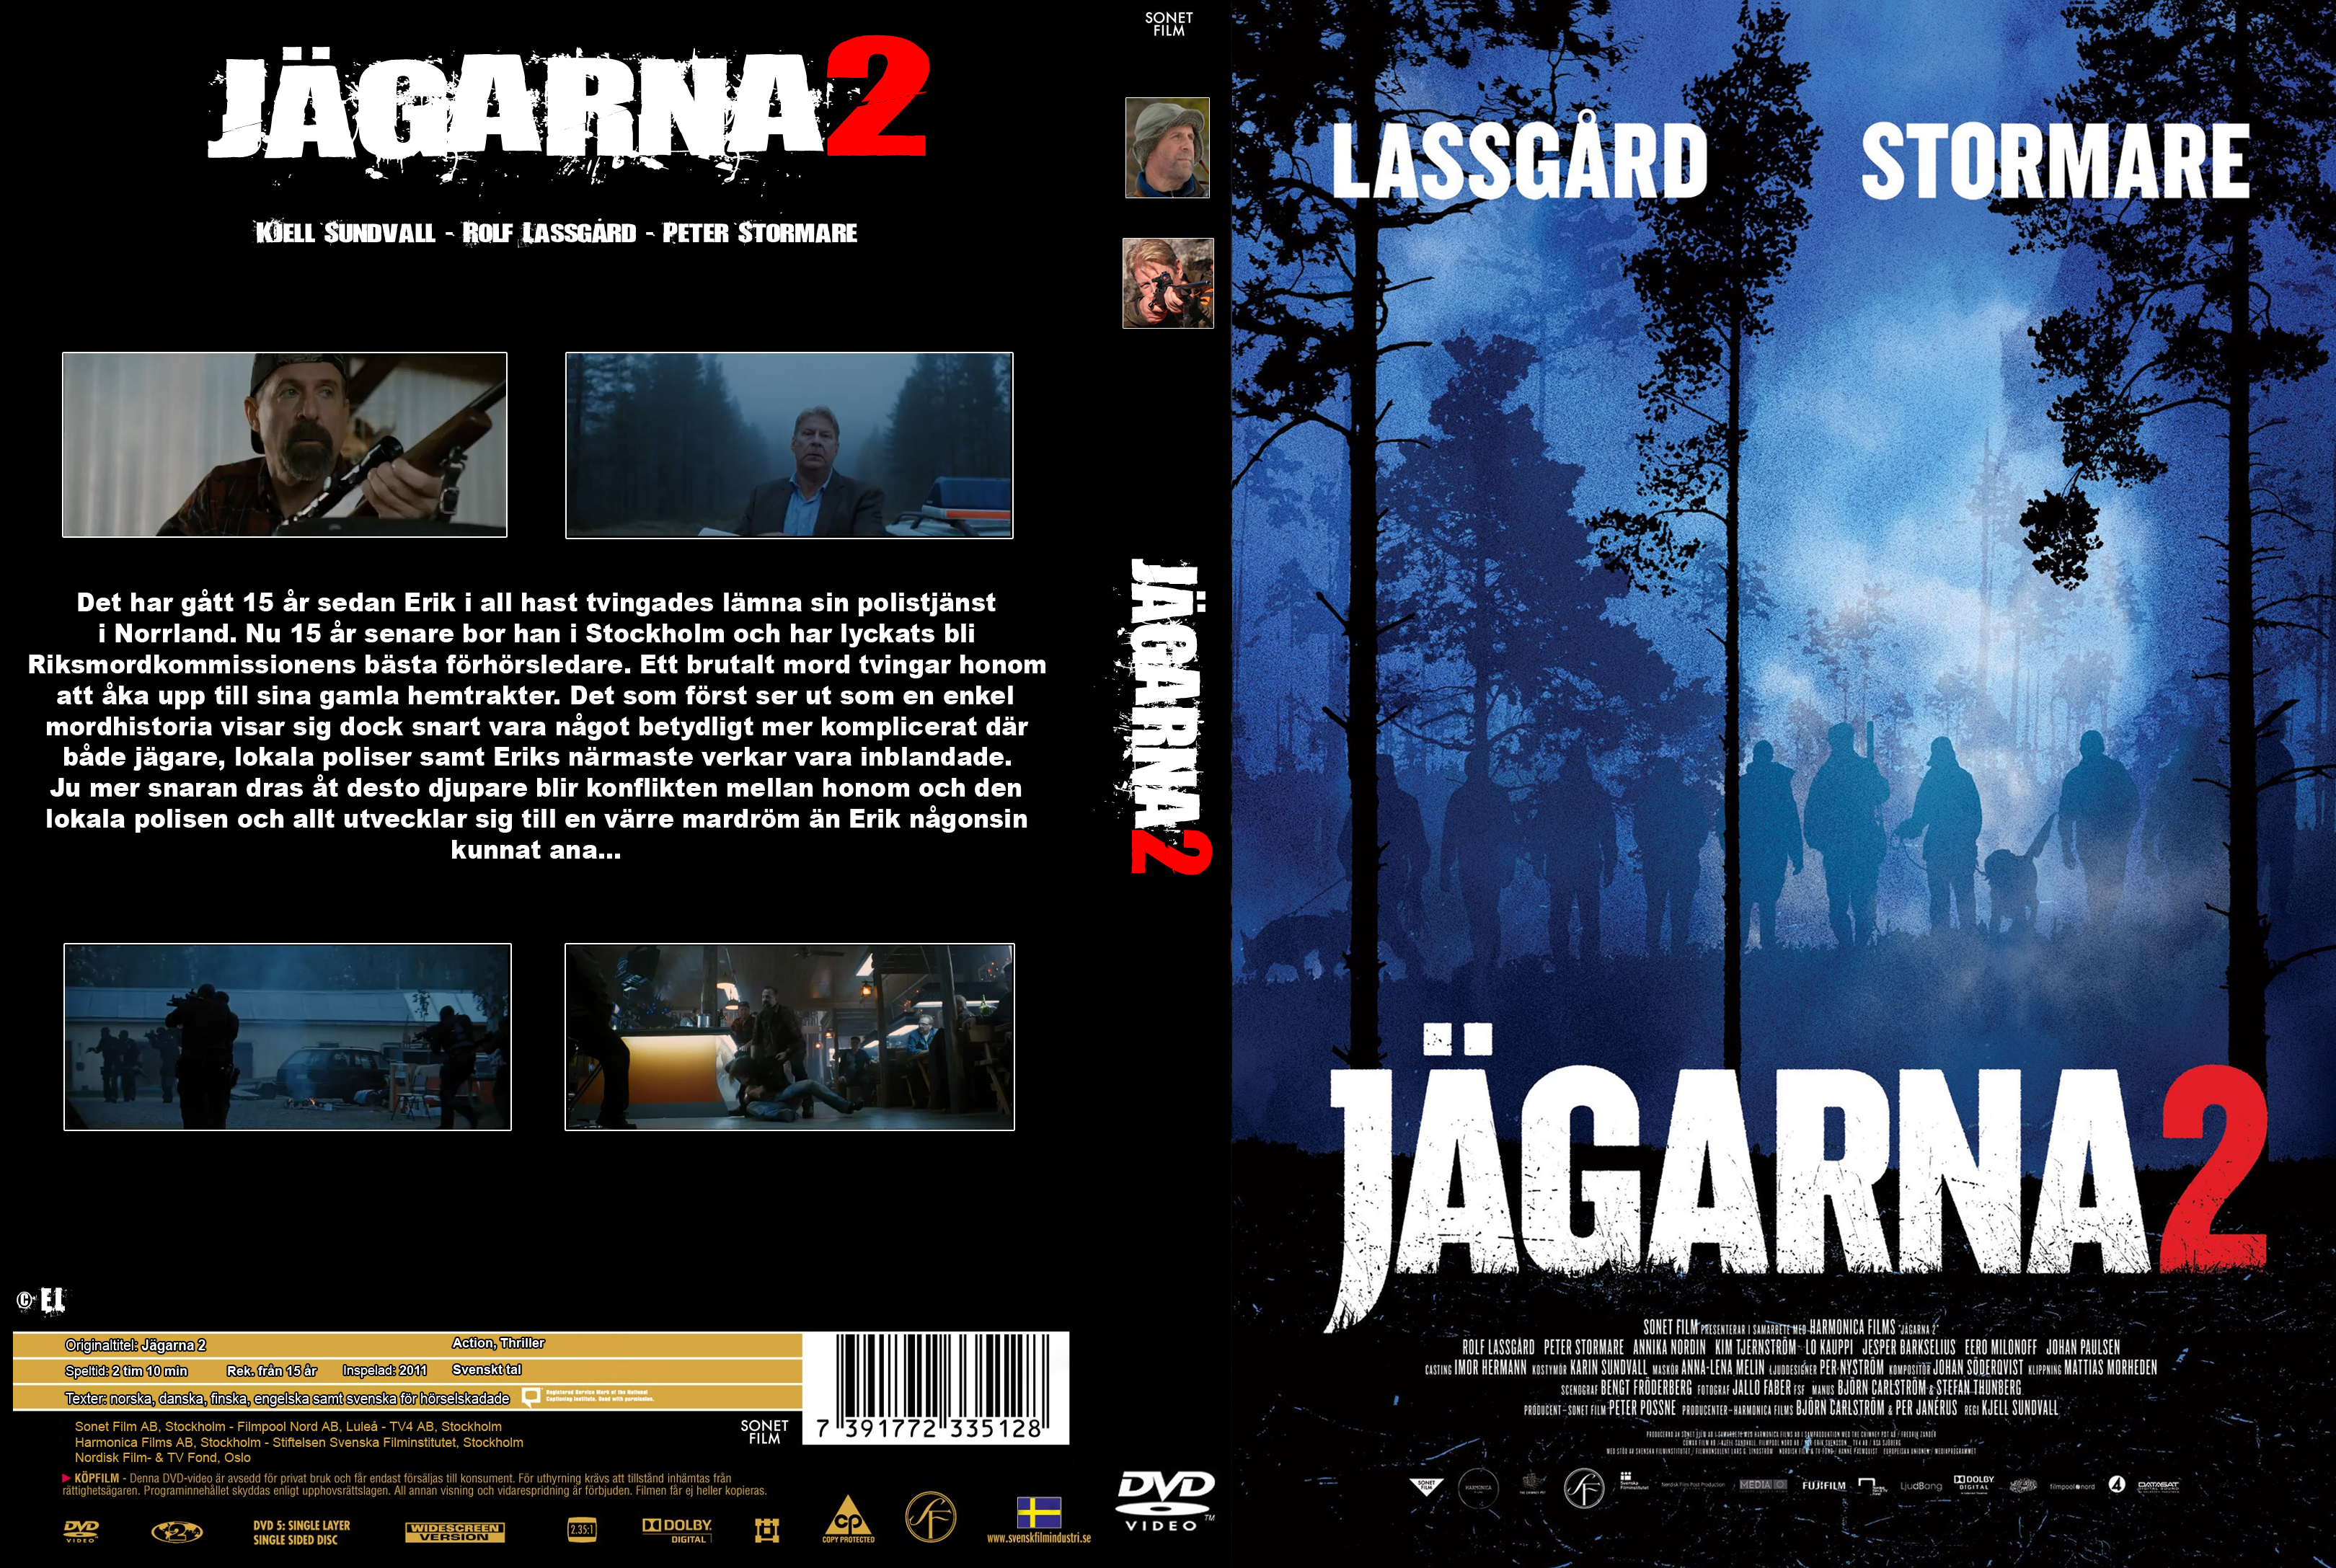 Jagarna 2 2011 SWEDiSH 1080p BluRay x264-iMSORNY